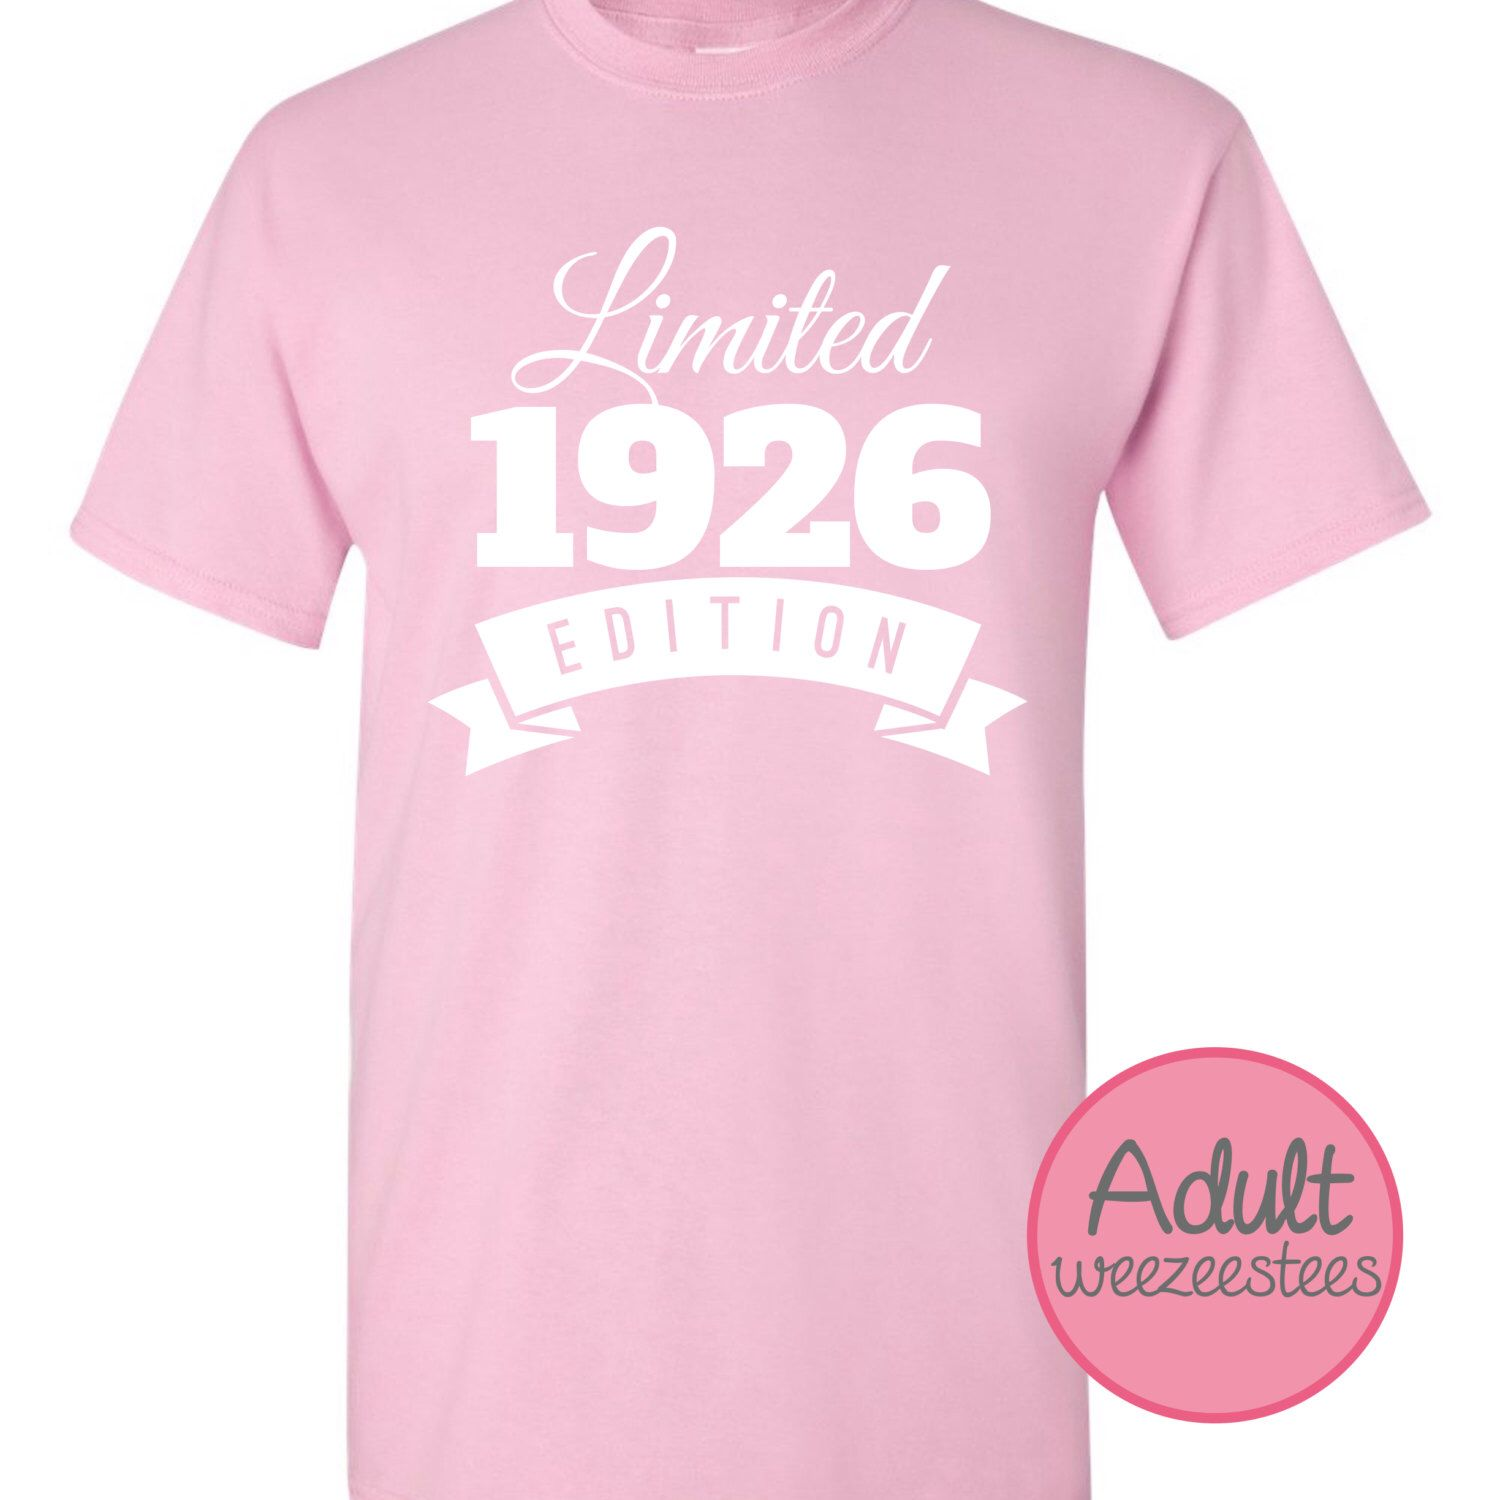 90 Year Old Birthday Shirt 1926 Grandpa Grandma Bday Limited Edition 90th Senior